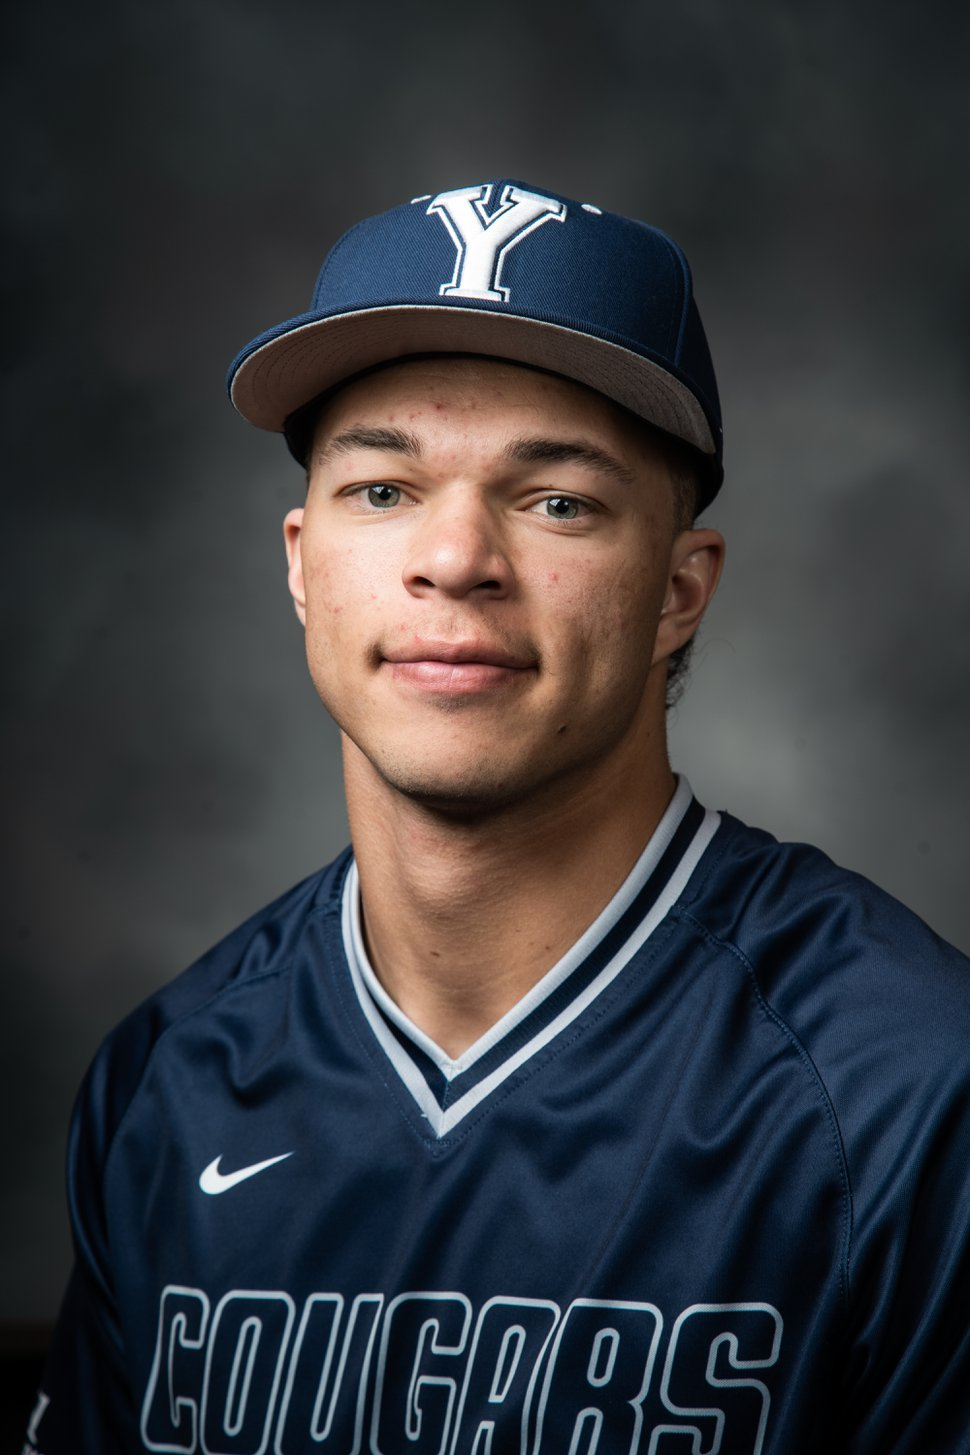 (Photo courtesy of Jaren Wilkey, BYU photo) | BYU freshman Jaren Hall played quarterback for the Cougars' football team last fall and will play right field for the Cougars' baseball team this spring, the latest BYU athlete to try his hand at two sports.